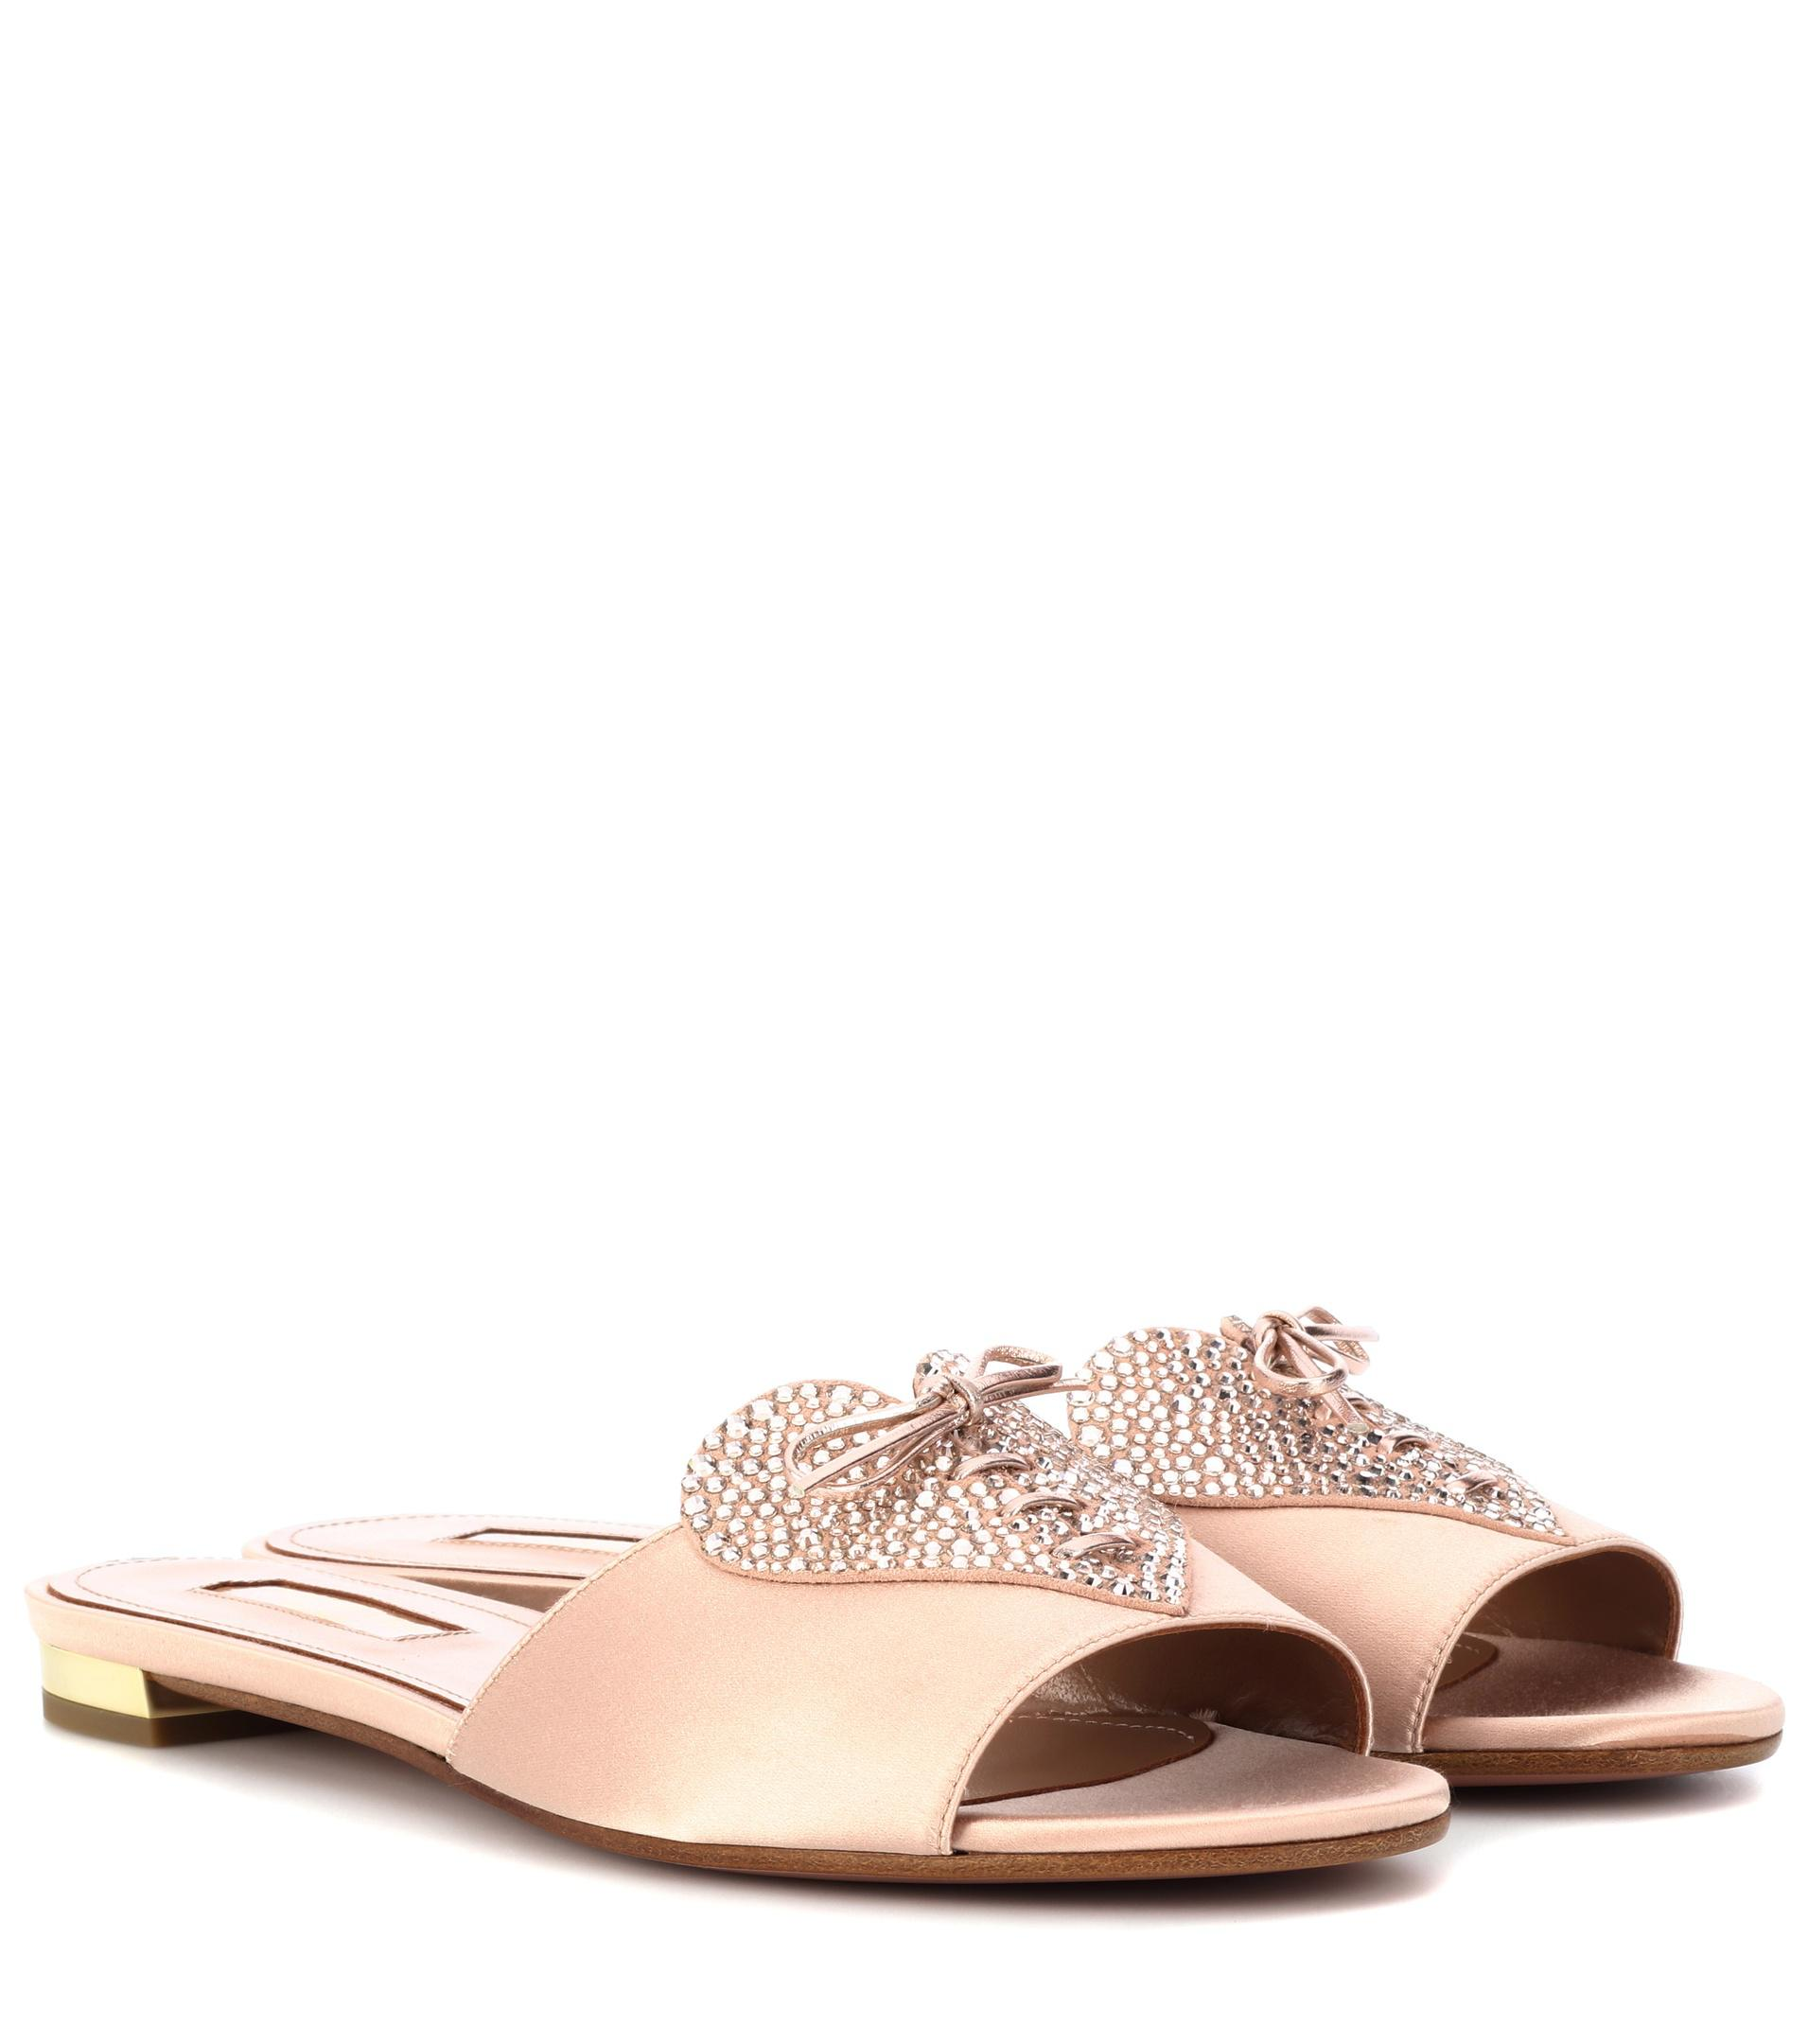 36426f598d98 Aquazzura Heartbeat Crystal-embellished Slides in Pink - Lyst